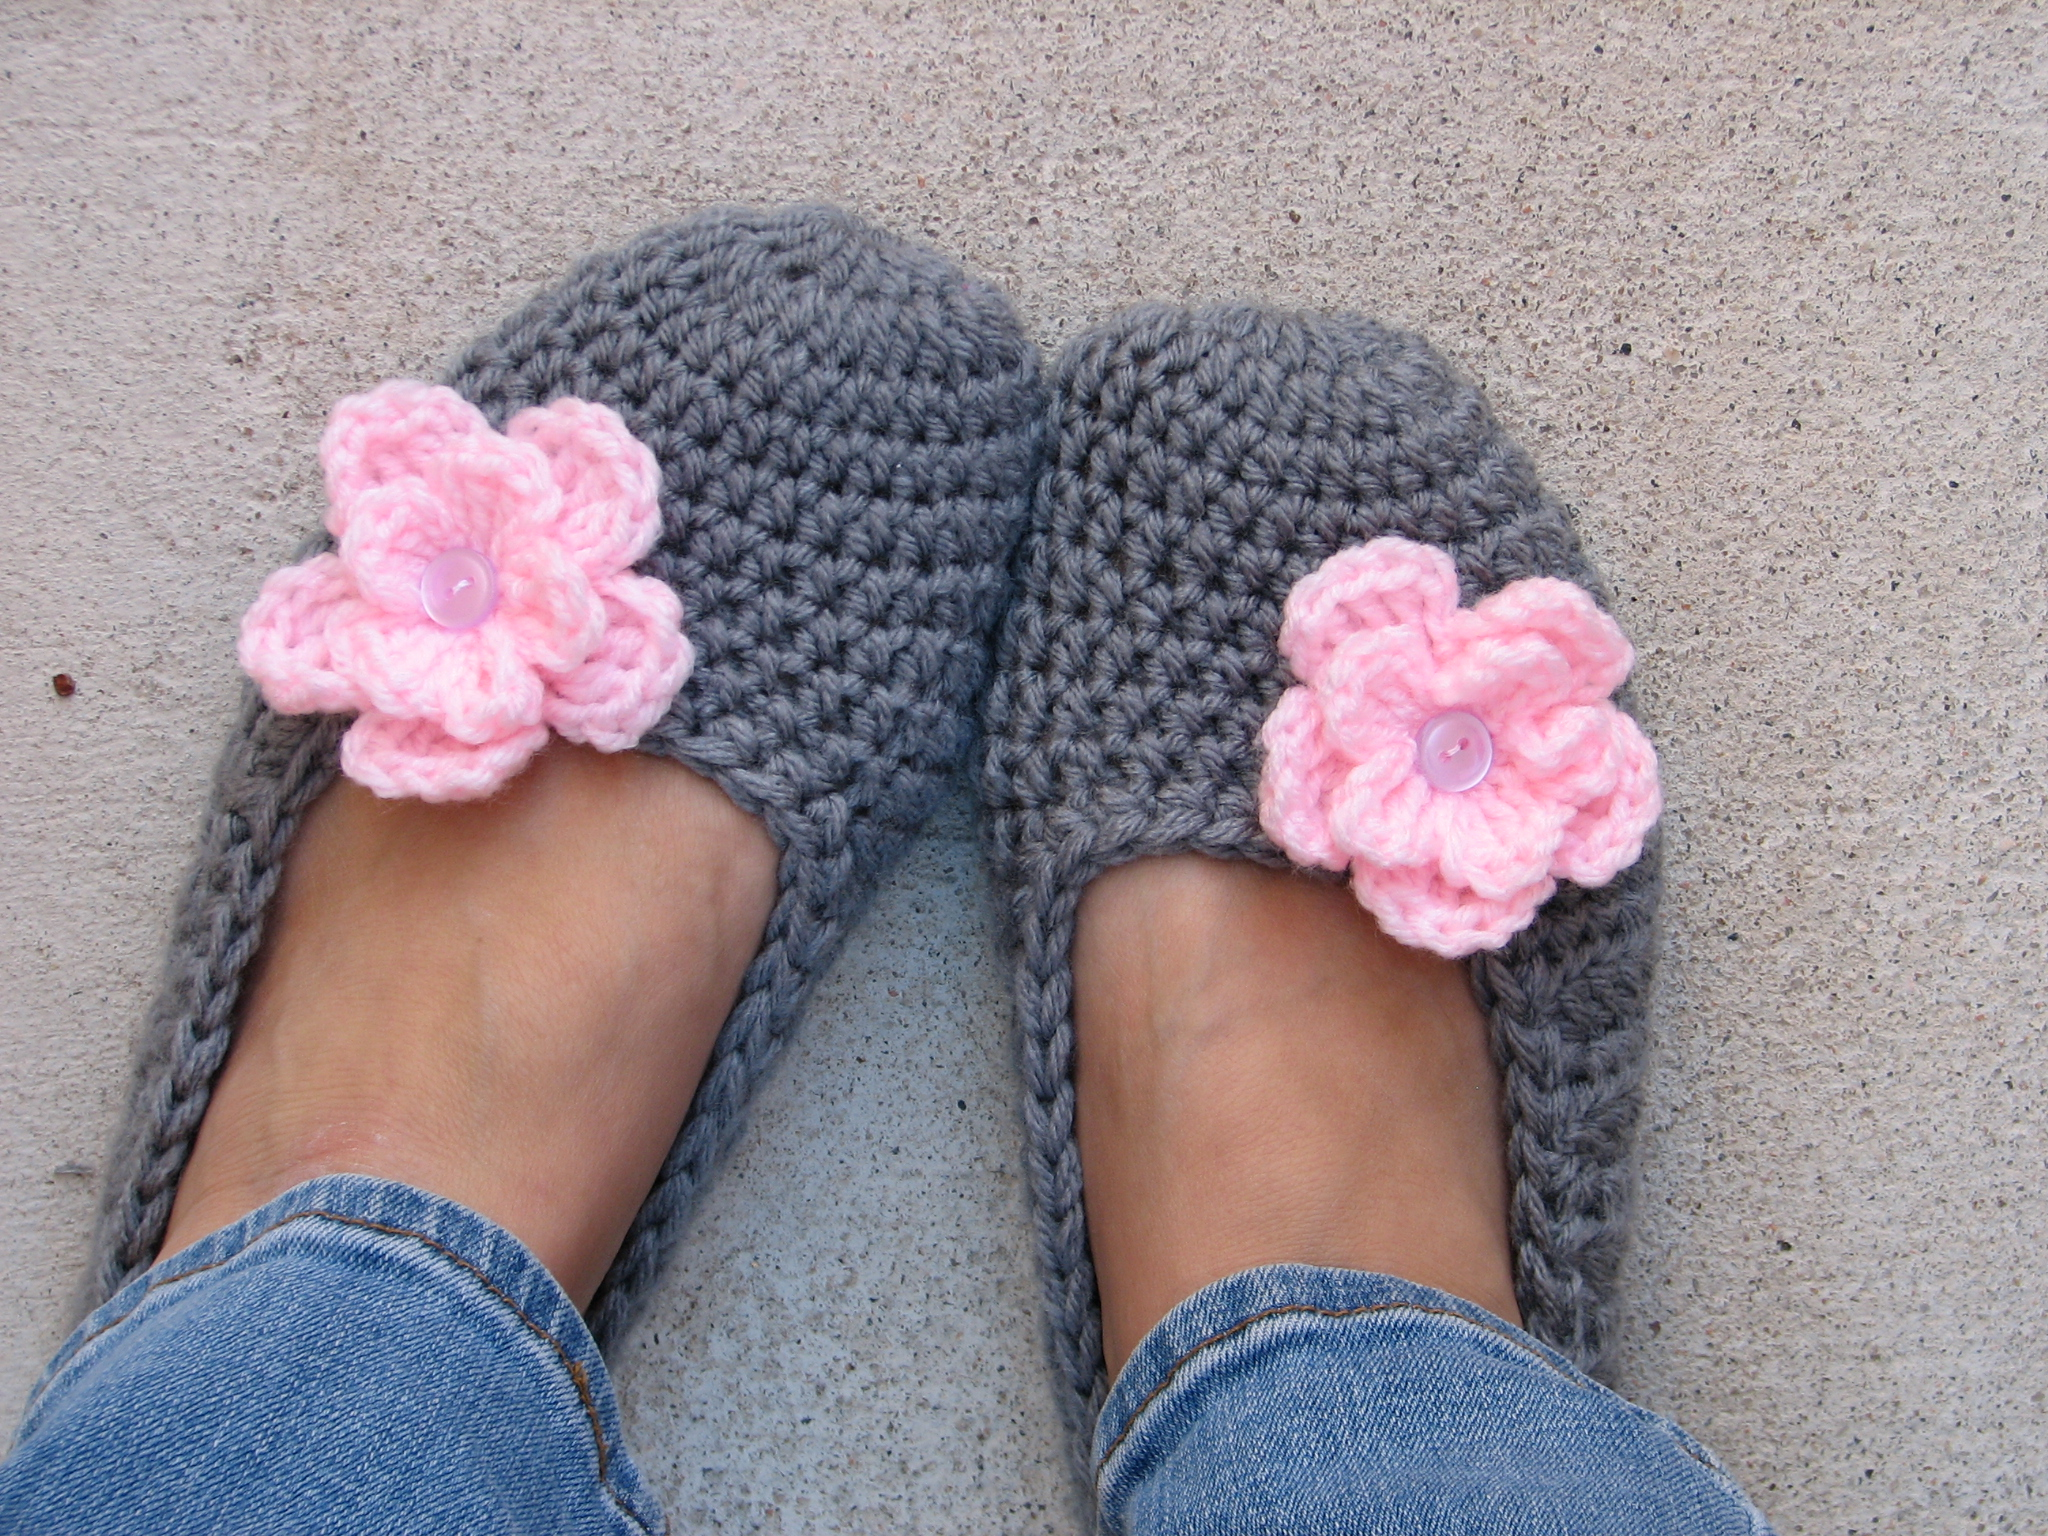 0ee27e5889f0d Crochet Women Slippers - Grey With Pink Flower, Accessories, Adult Crochet  Slippers, Home Shoes, Crochet Women Slippers